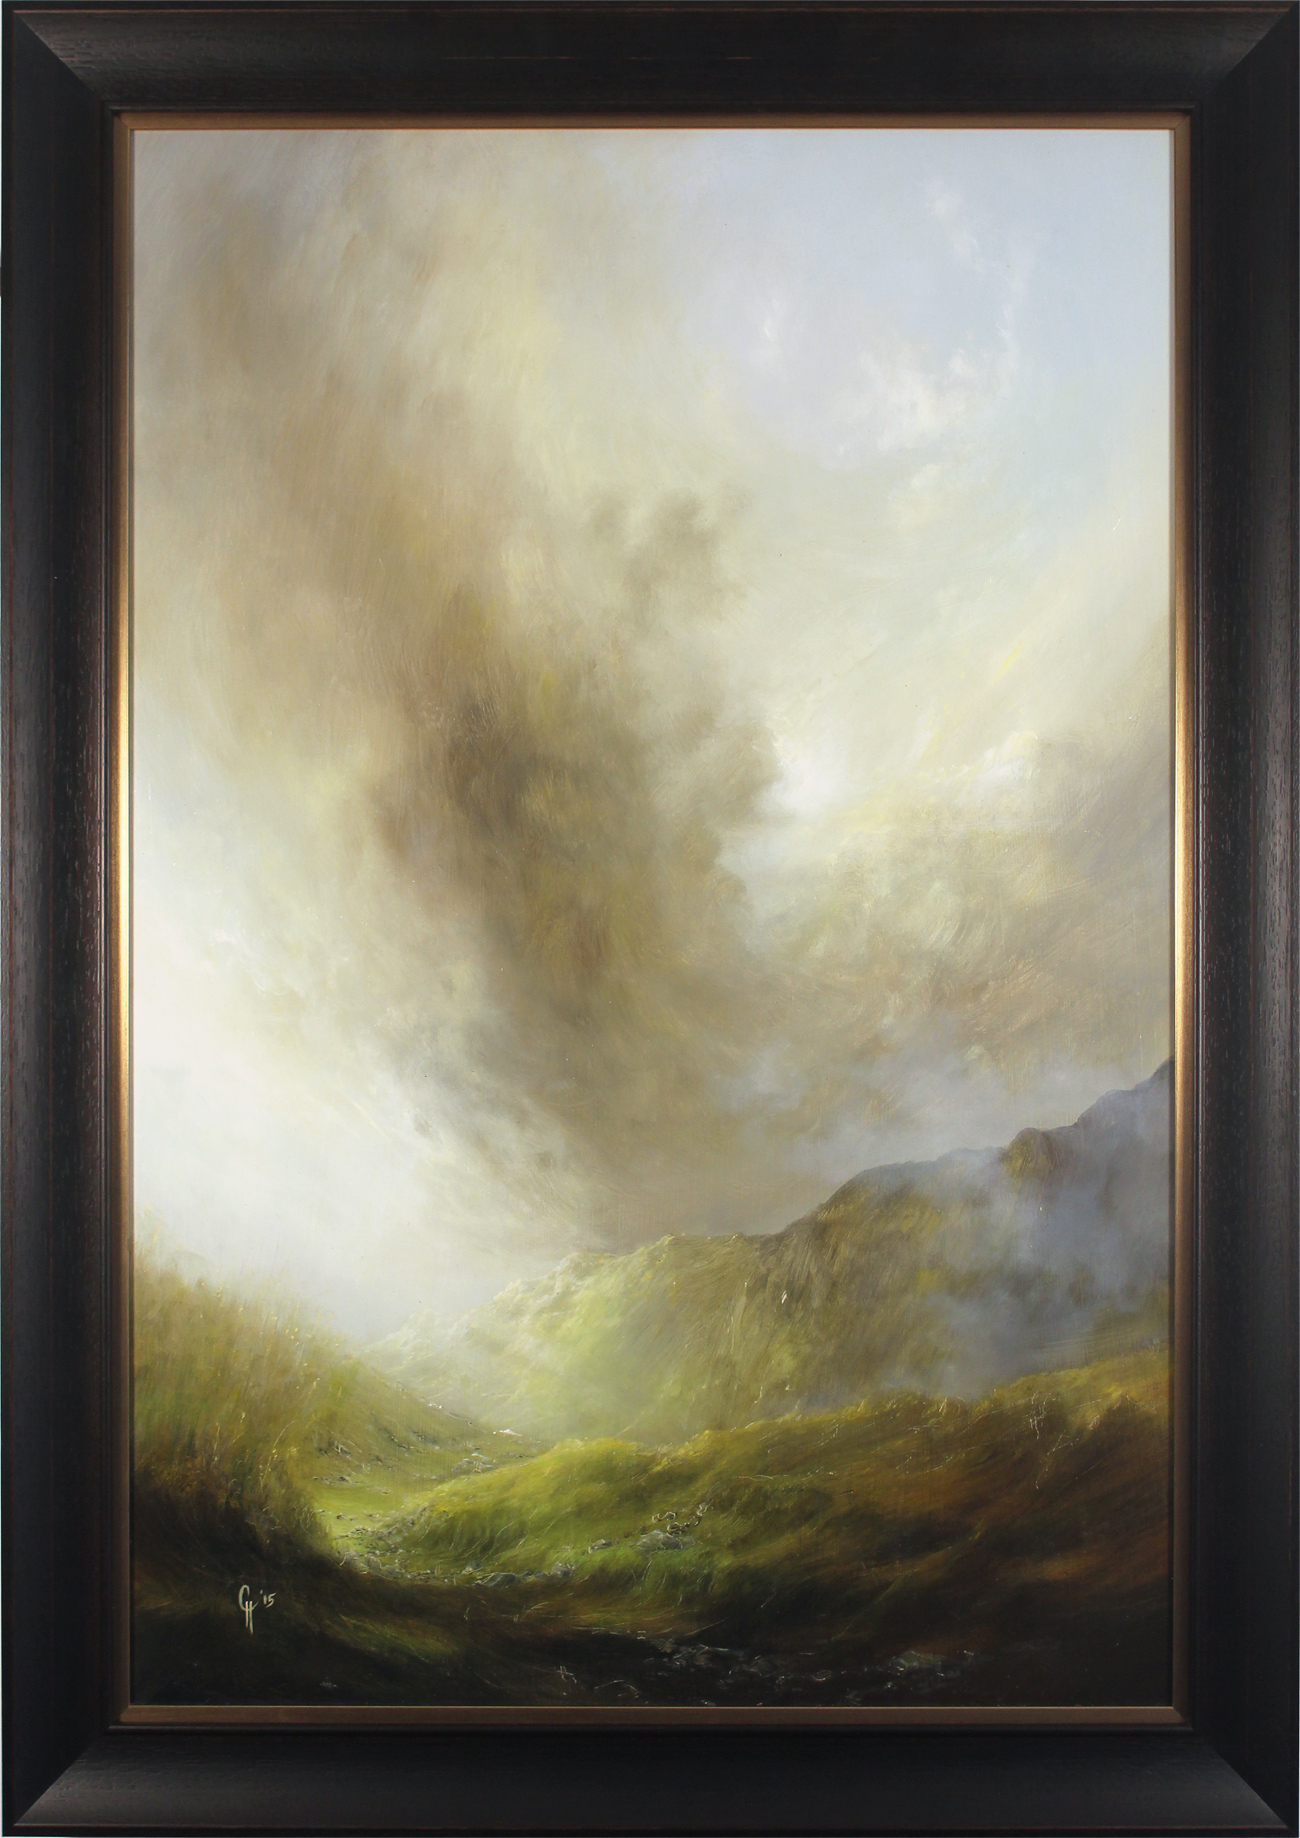 Clare Haley, Original oil painting on panel, Down to the Valley from the Mossy Path, click to enlarge